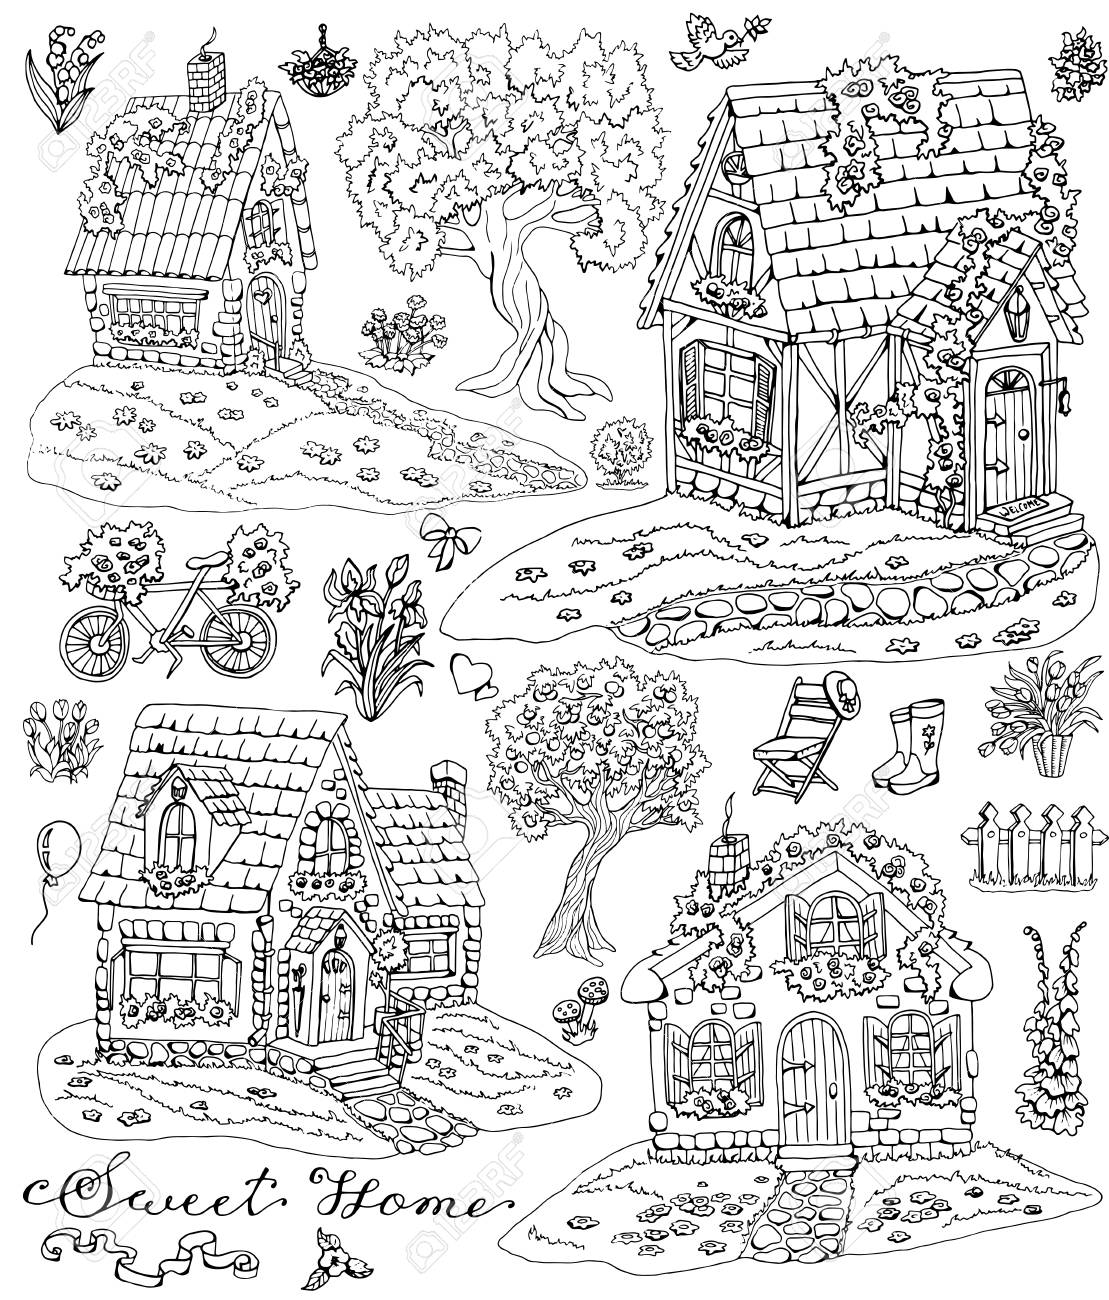 Coloring Page With Cute Country Cottages Trees Flowers And